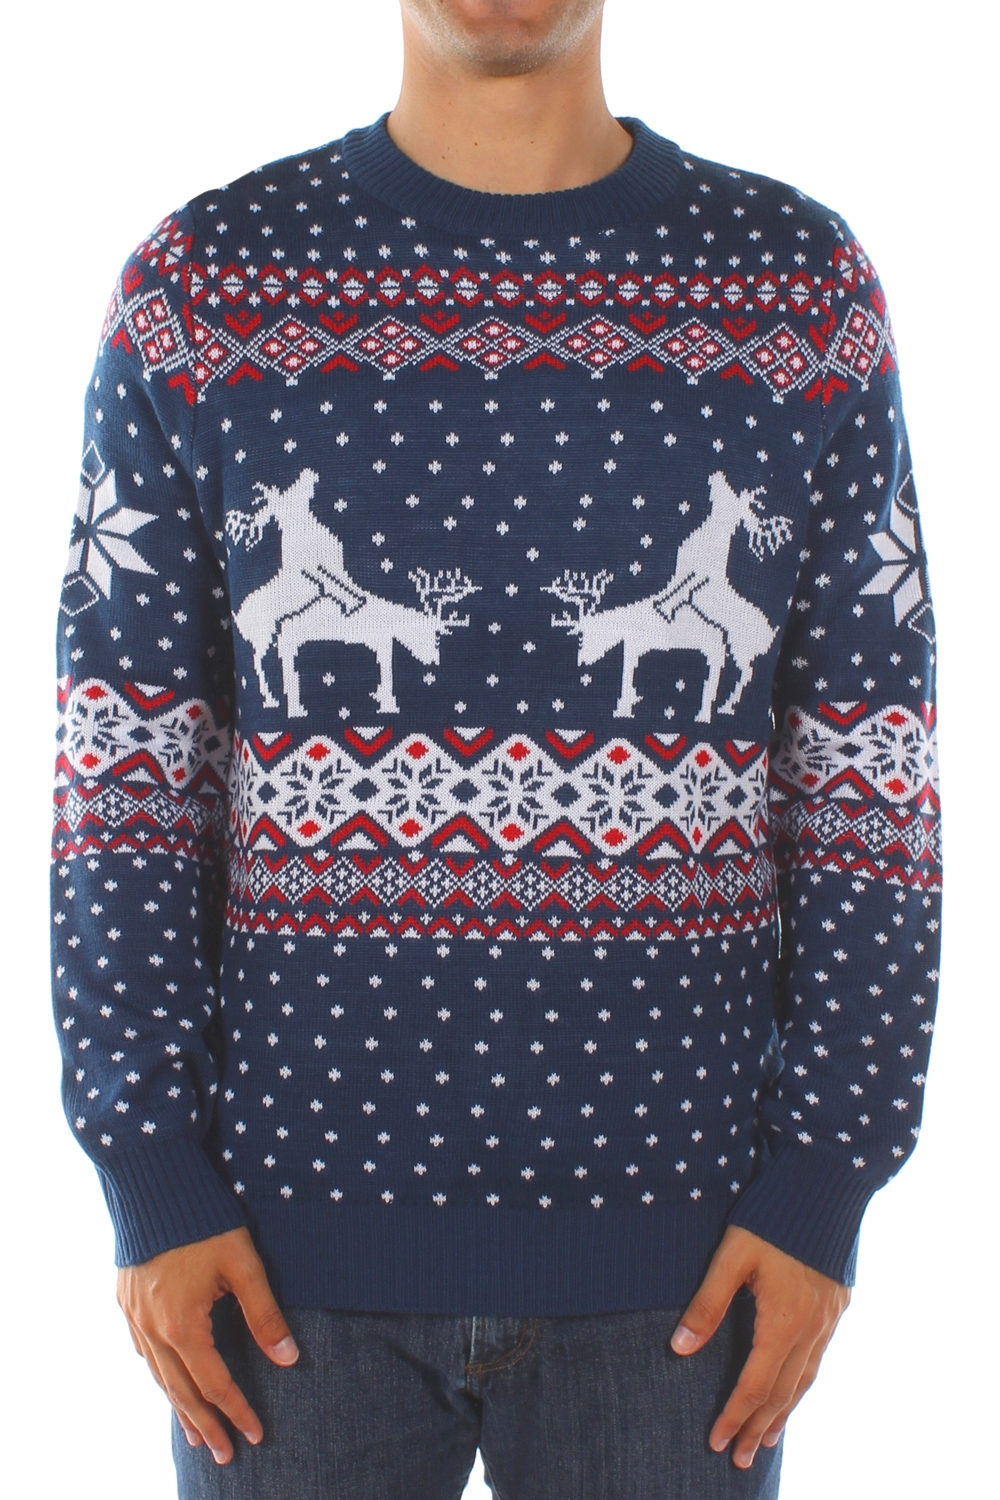 Women Knited Holiday Pullover Christmas Cute Reindeer Sweater. from $ 19 99 Prime. out of 5 stars Uideazone. Unisex Ugly Christmas Sweaters Long Sleeve Round Neck Knitted Sweater Pullover. from $ 15 98 Prime. out of 5 stars Ensasa. Womens Autumn Winter Snowflake Graphic Printed Stretchy Leggings Pants.